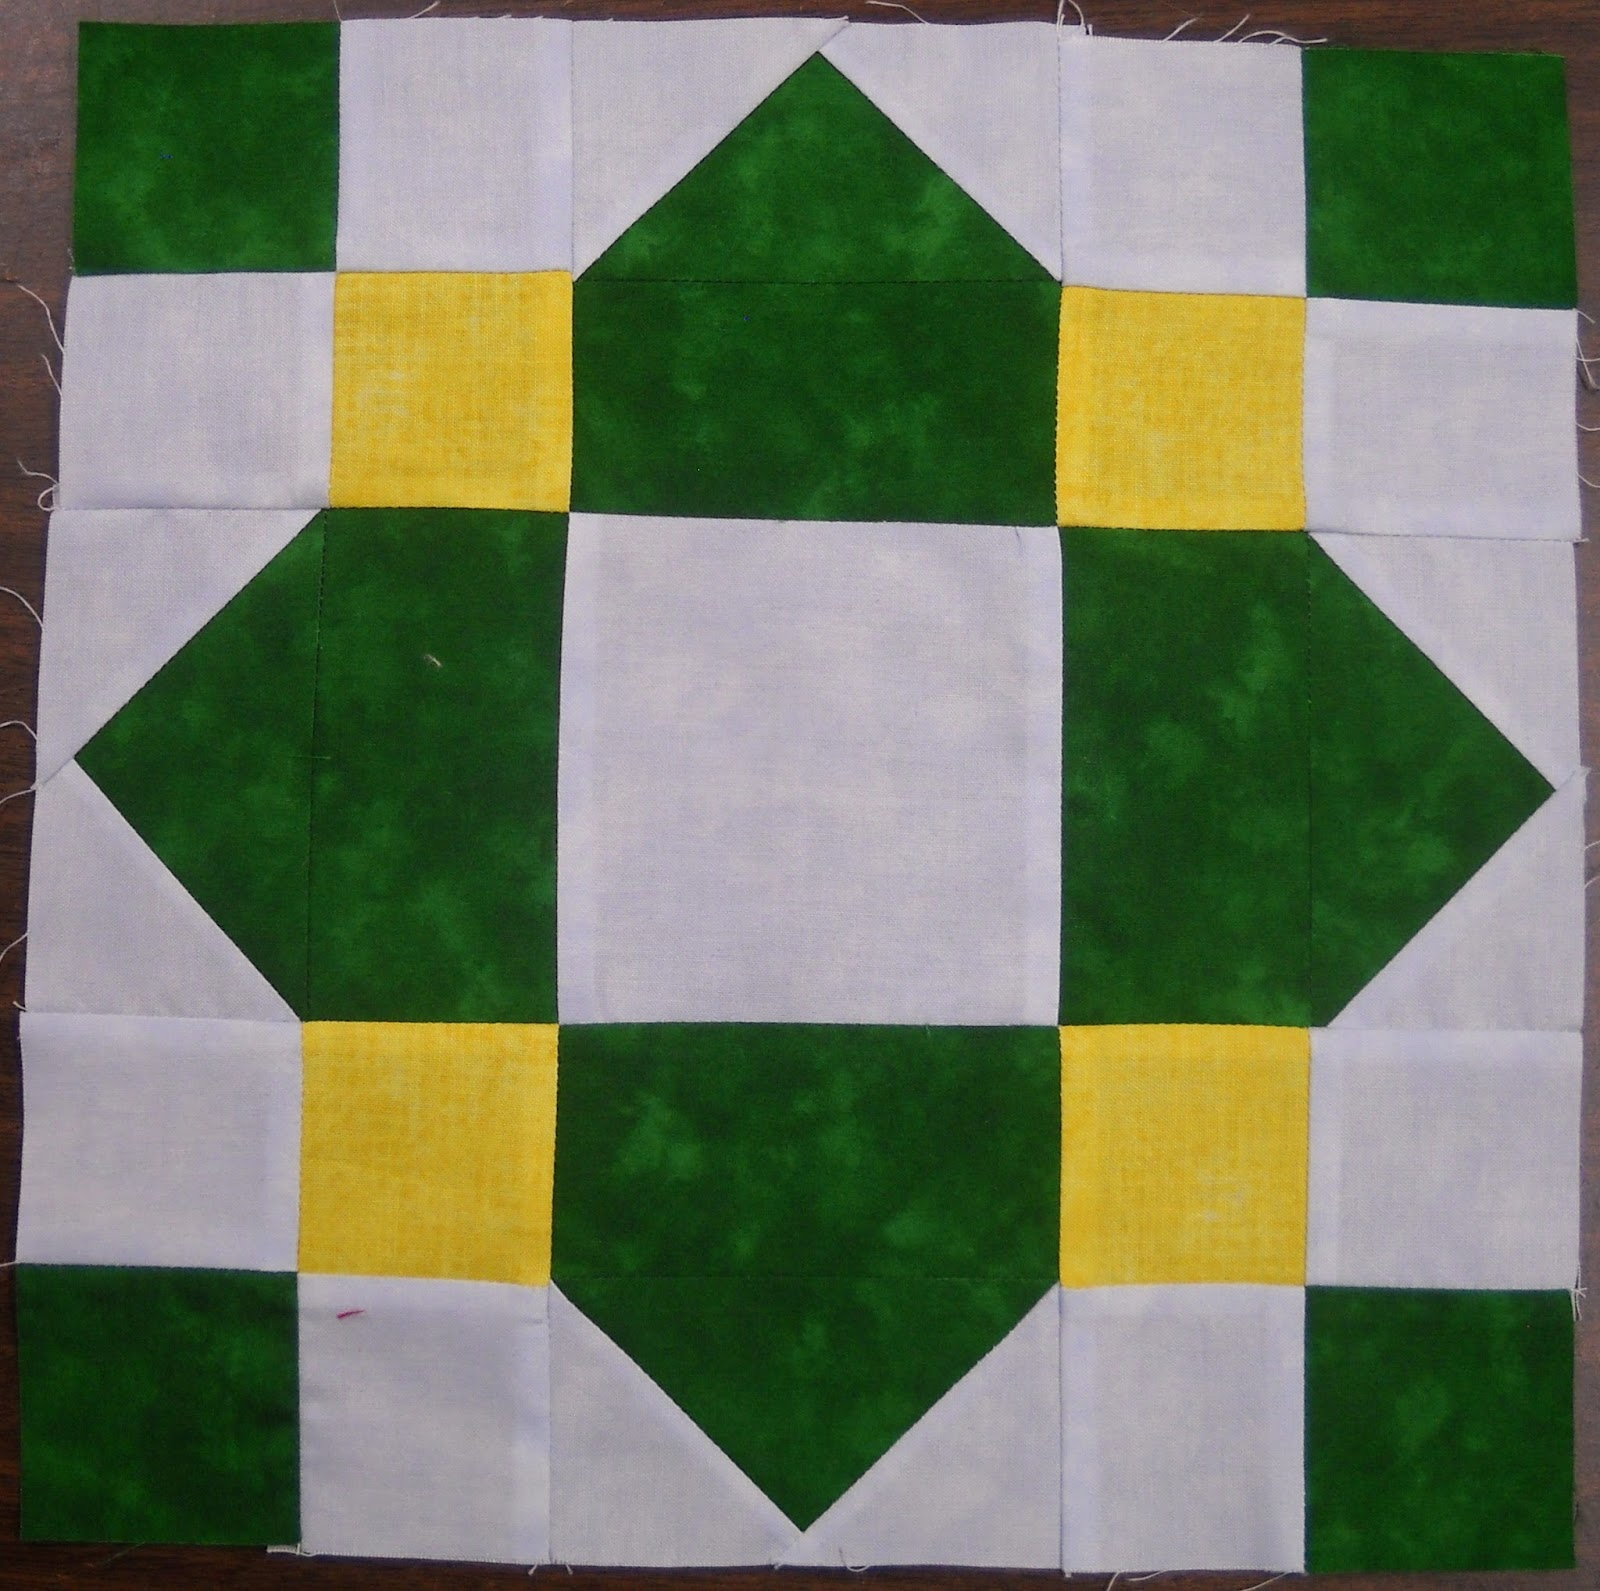 Free Quilt Block Design Program : Sew Pieceful Quilting: Sew Pieceful s Upcoming Block of the Month Program: